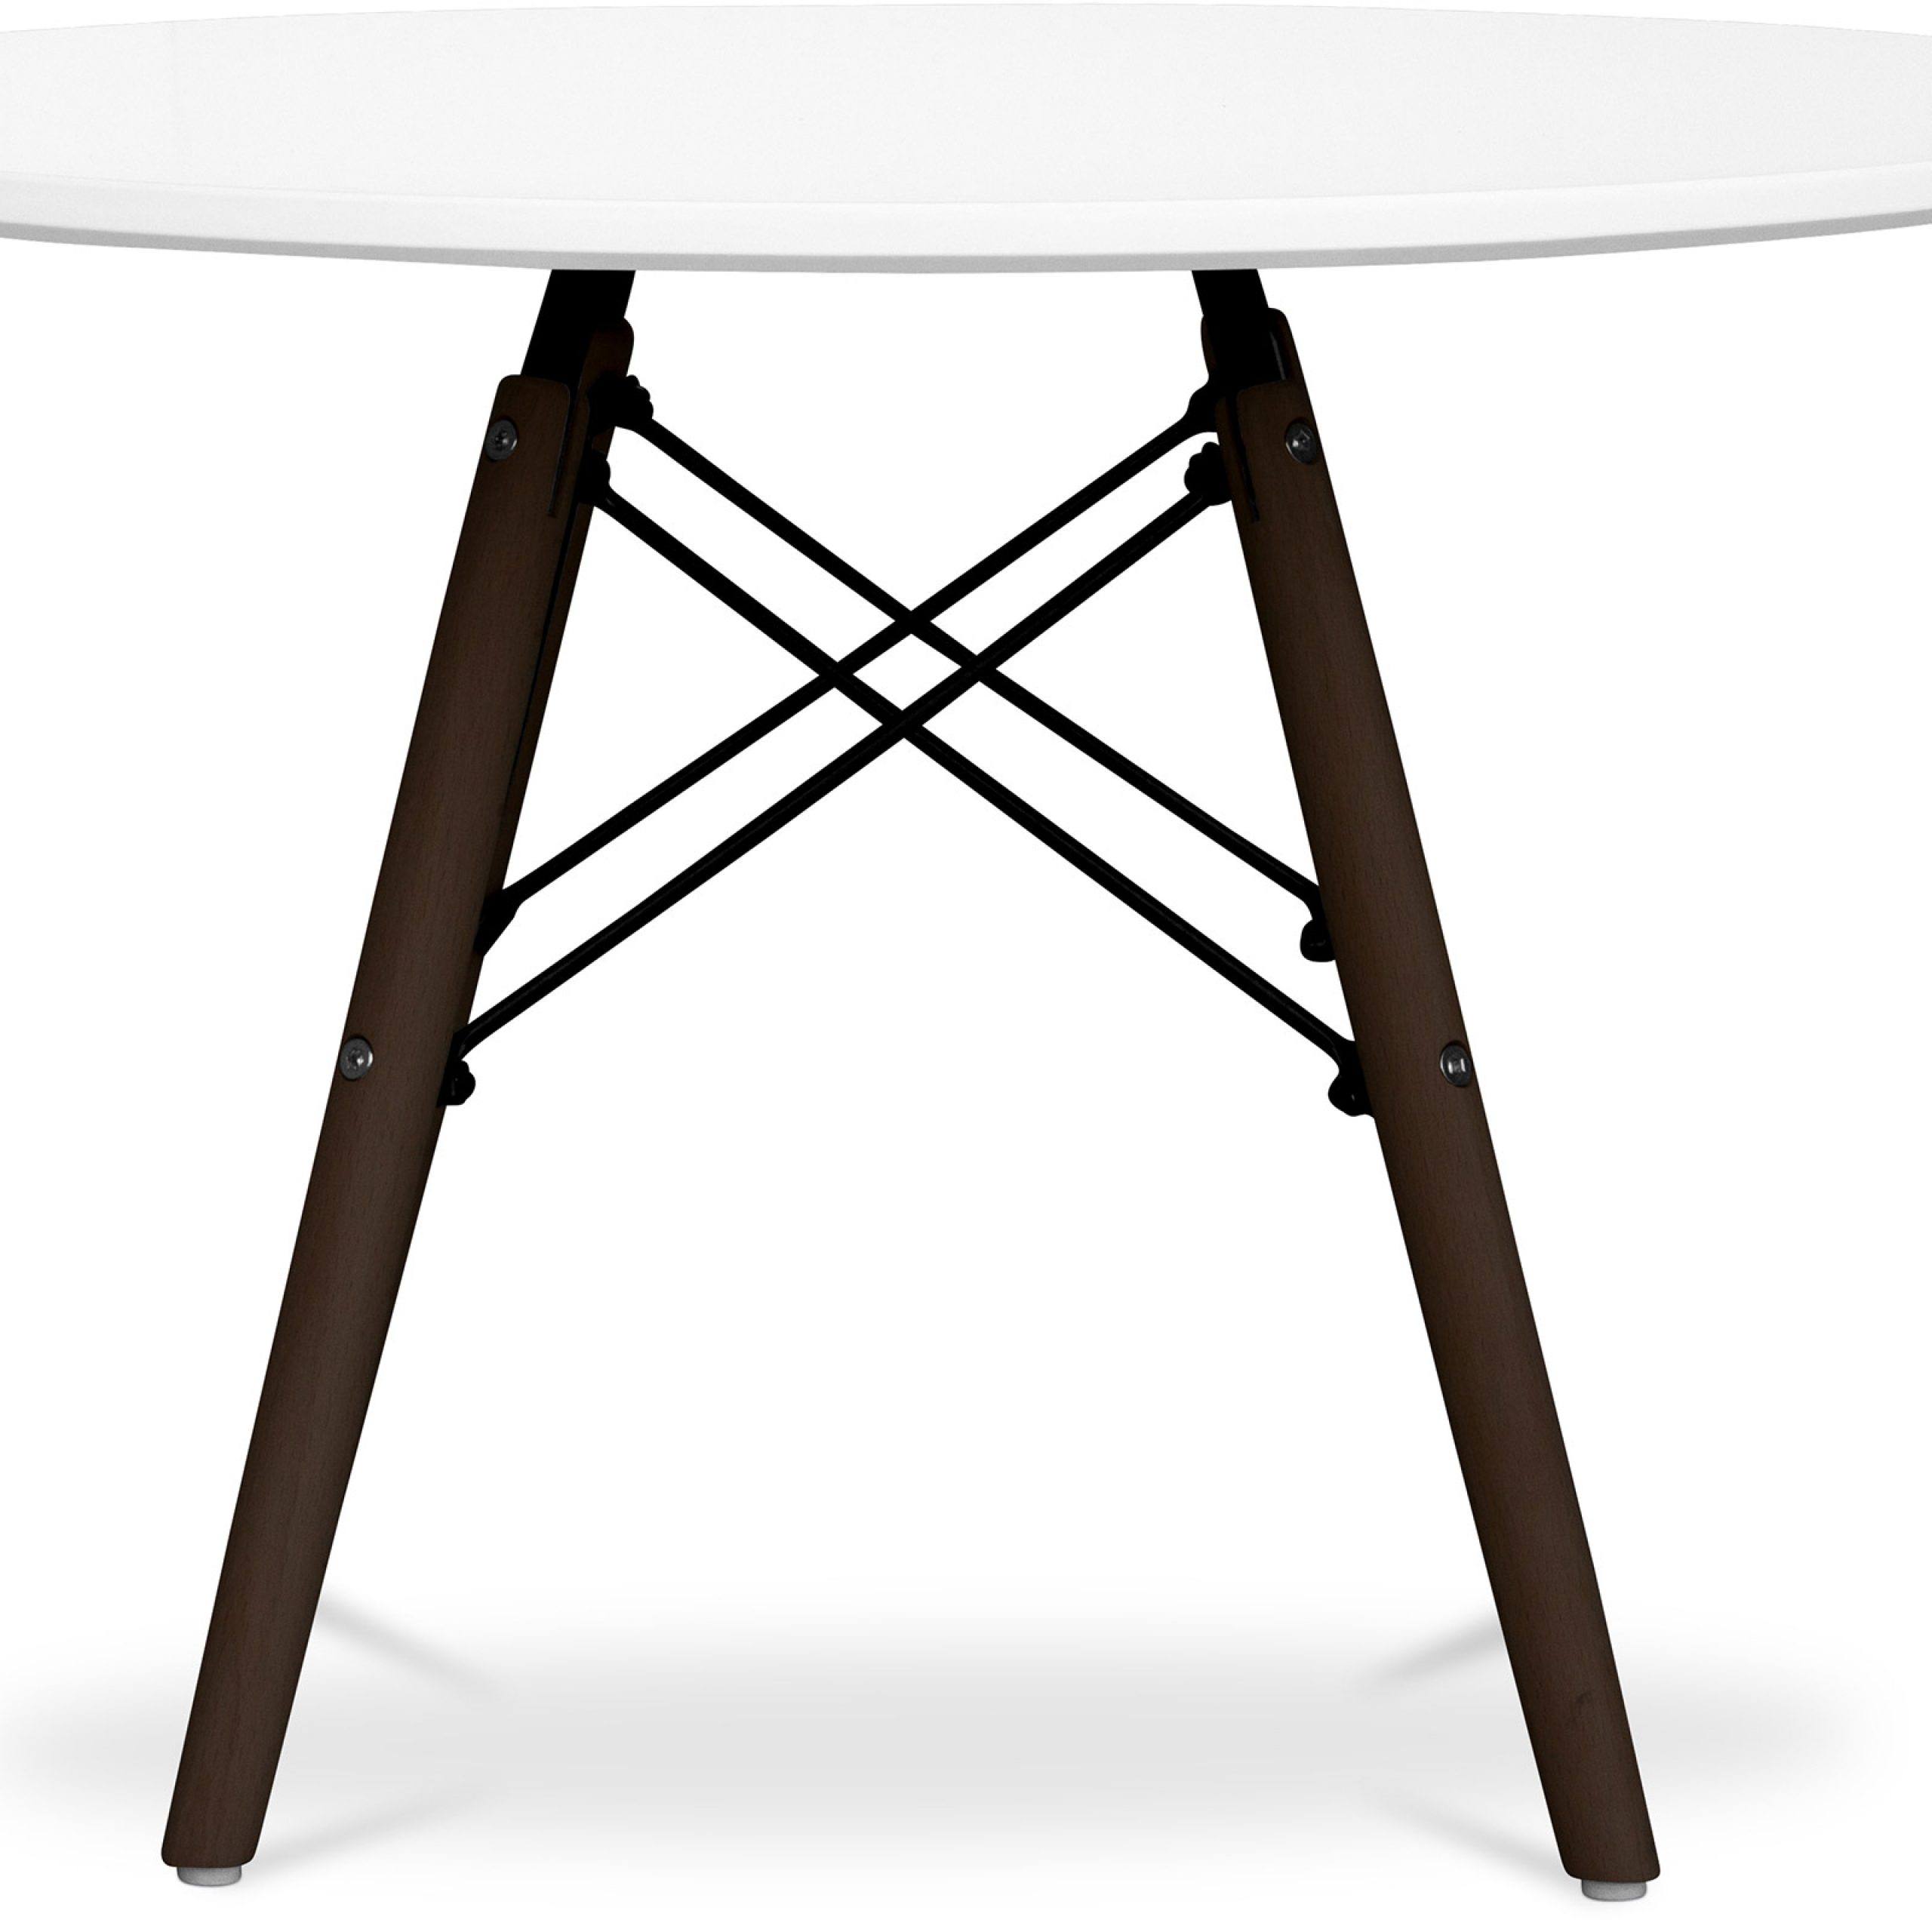 Well Known Eames Style Dining Tables With Wooden Legs Pertaining To Dark Legs Dsw Kids Table Charles Eames – Style – Wood (View 29 of 30)